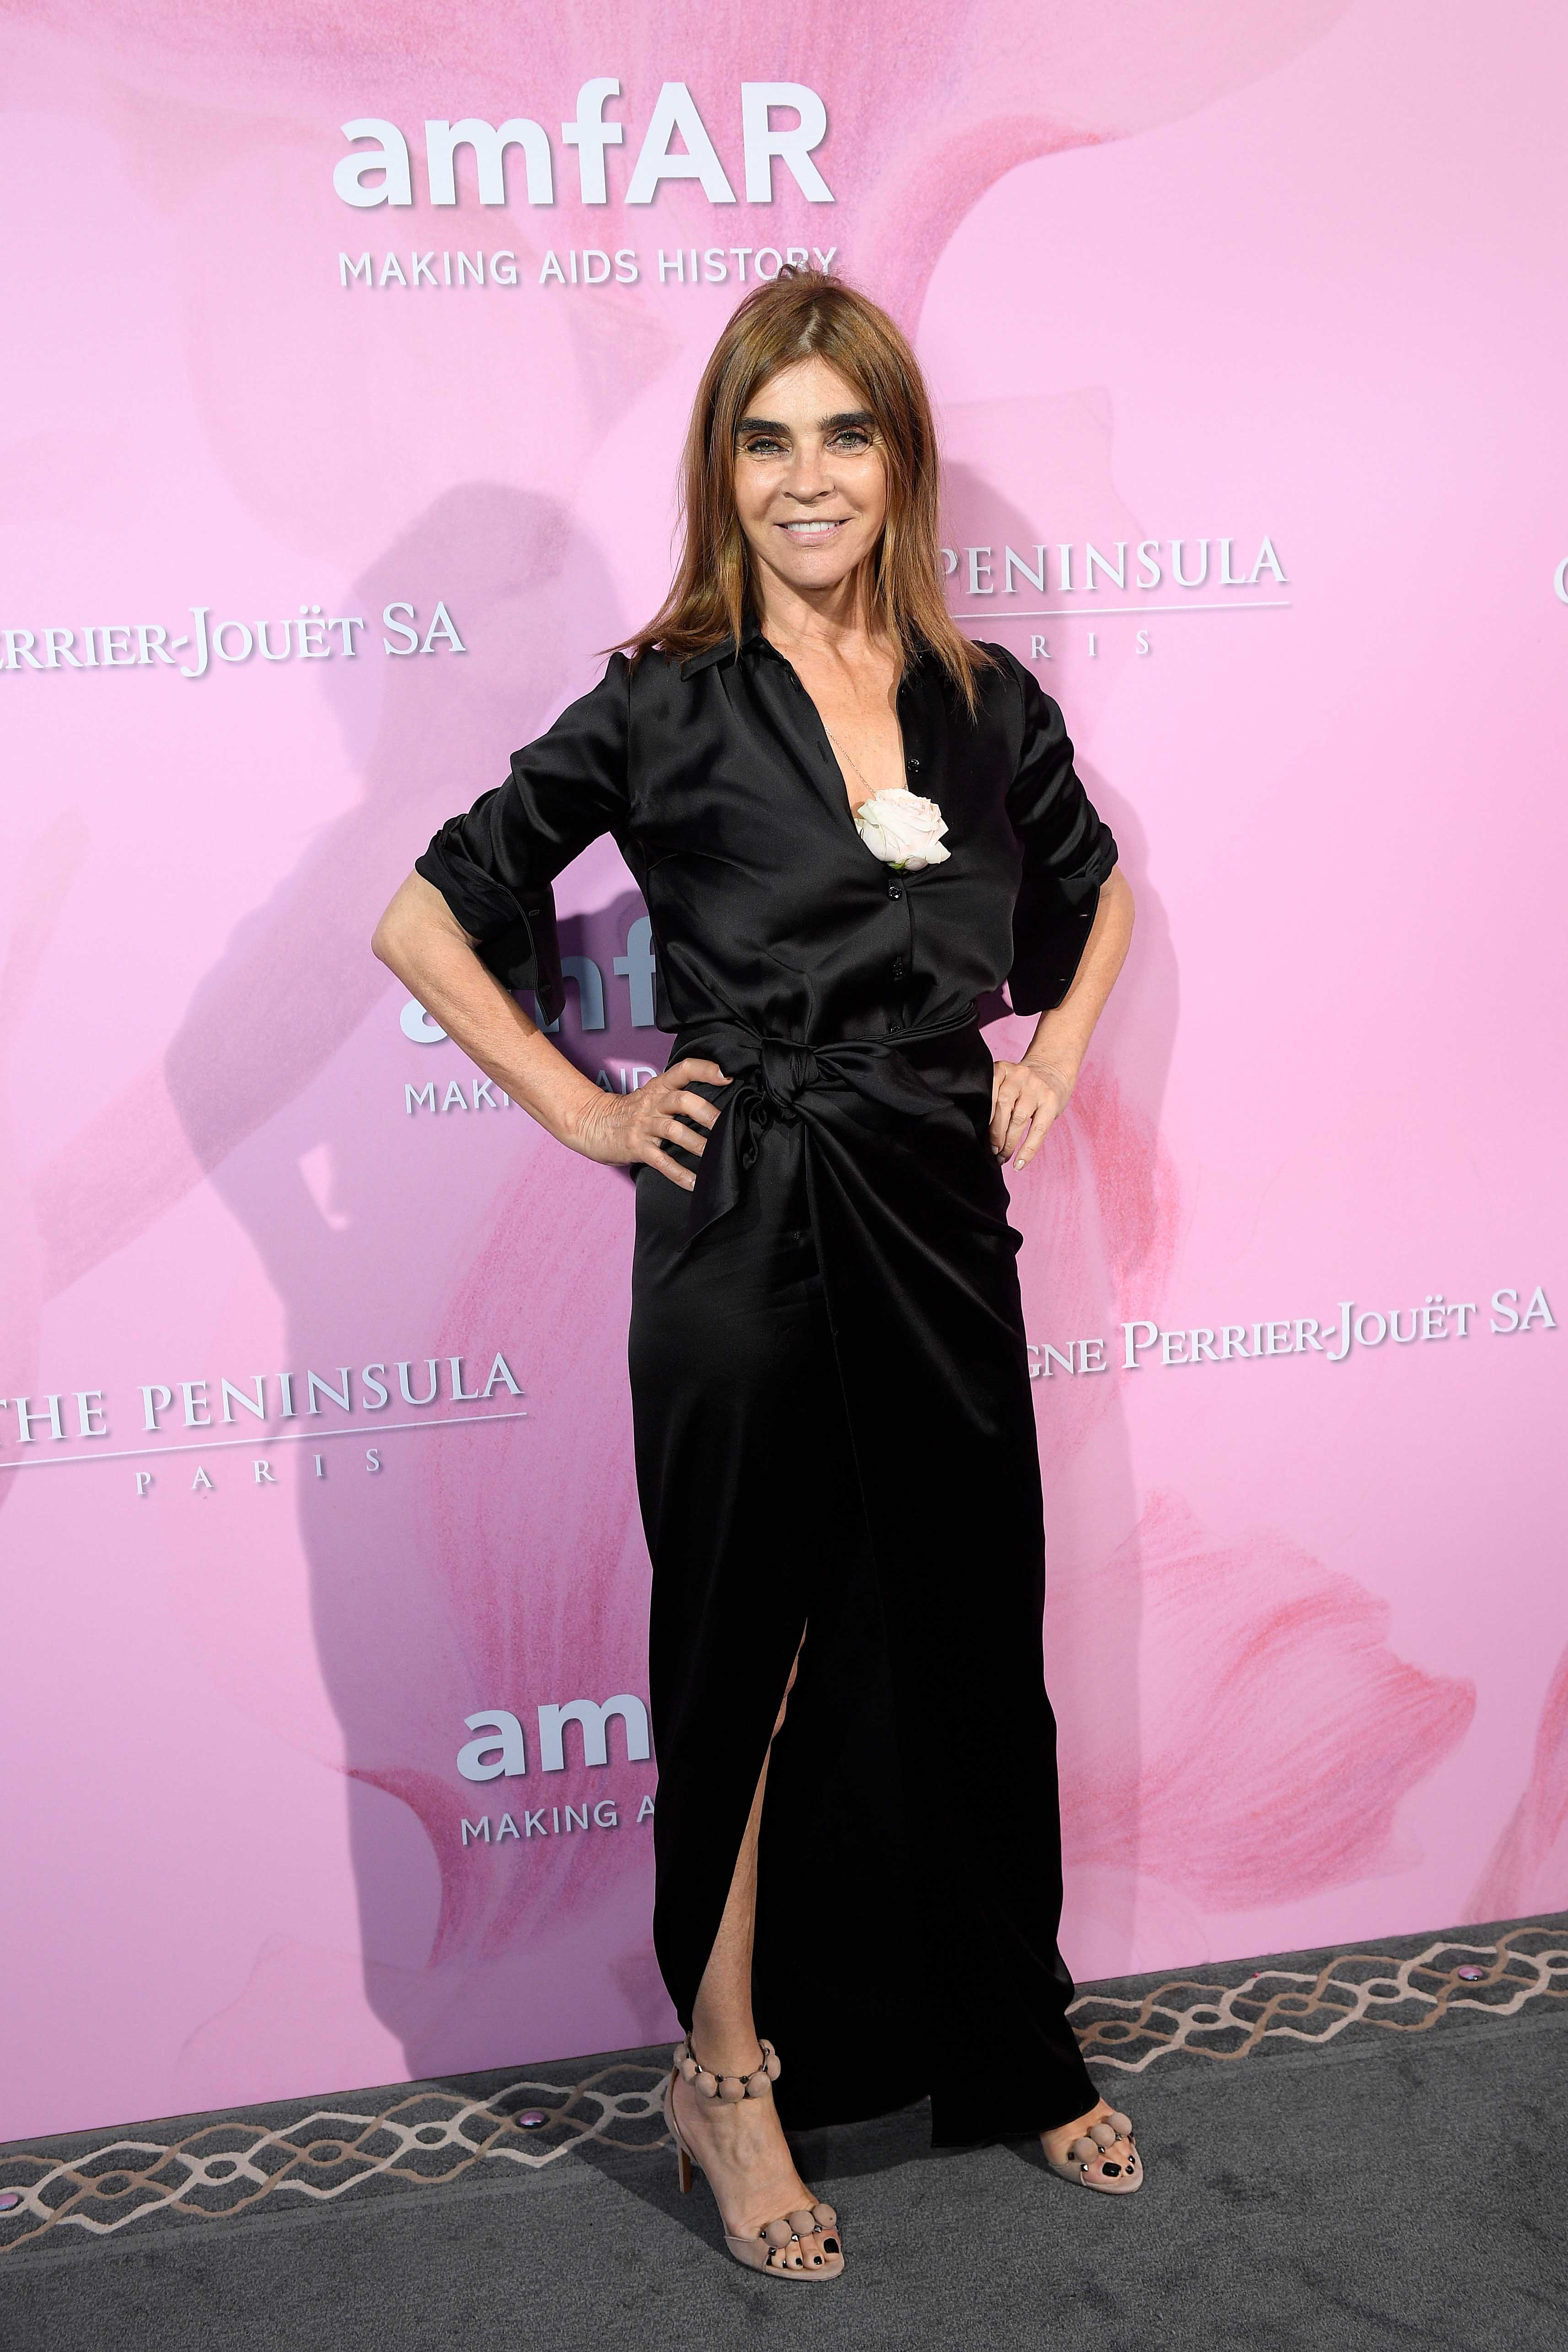 Carine Roitfeld © Getty Images